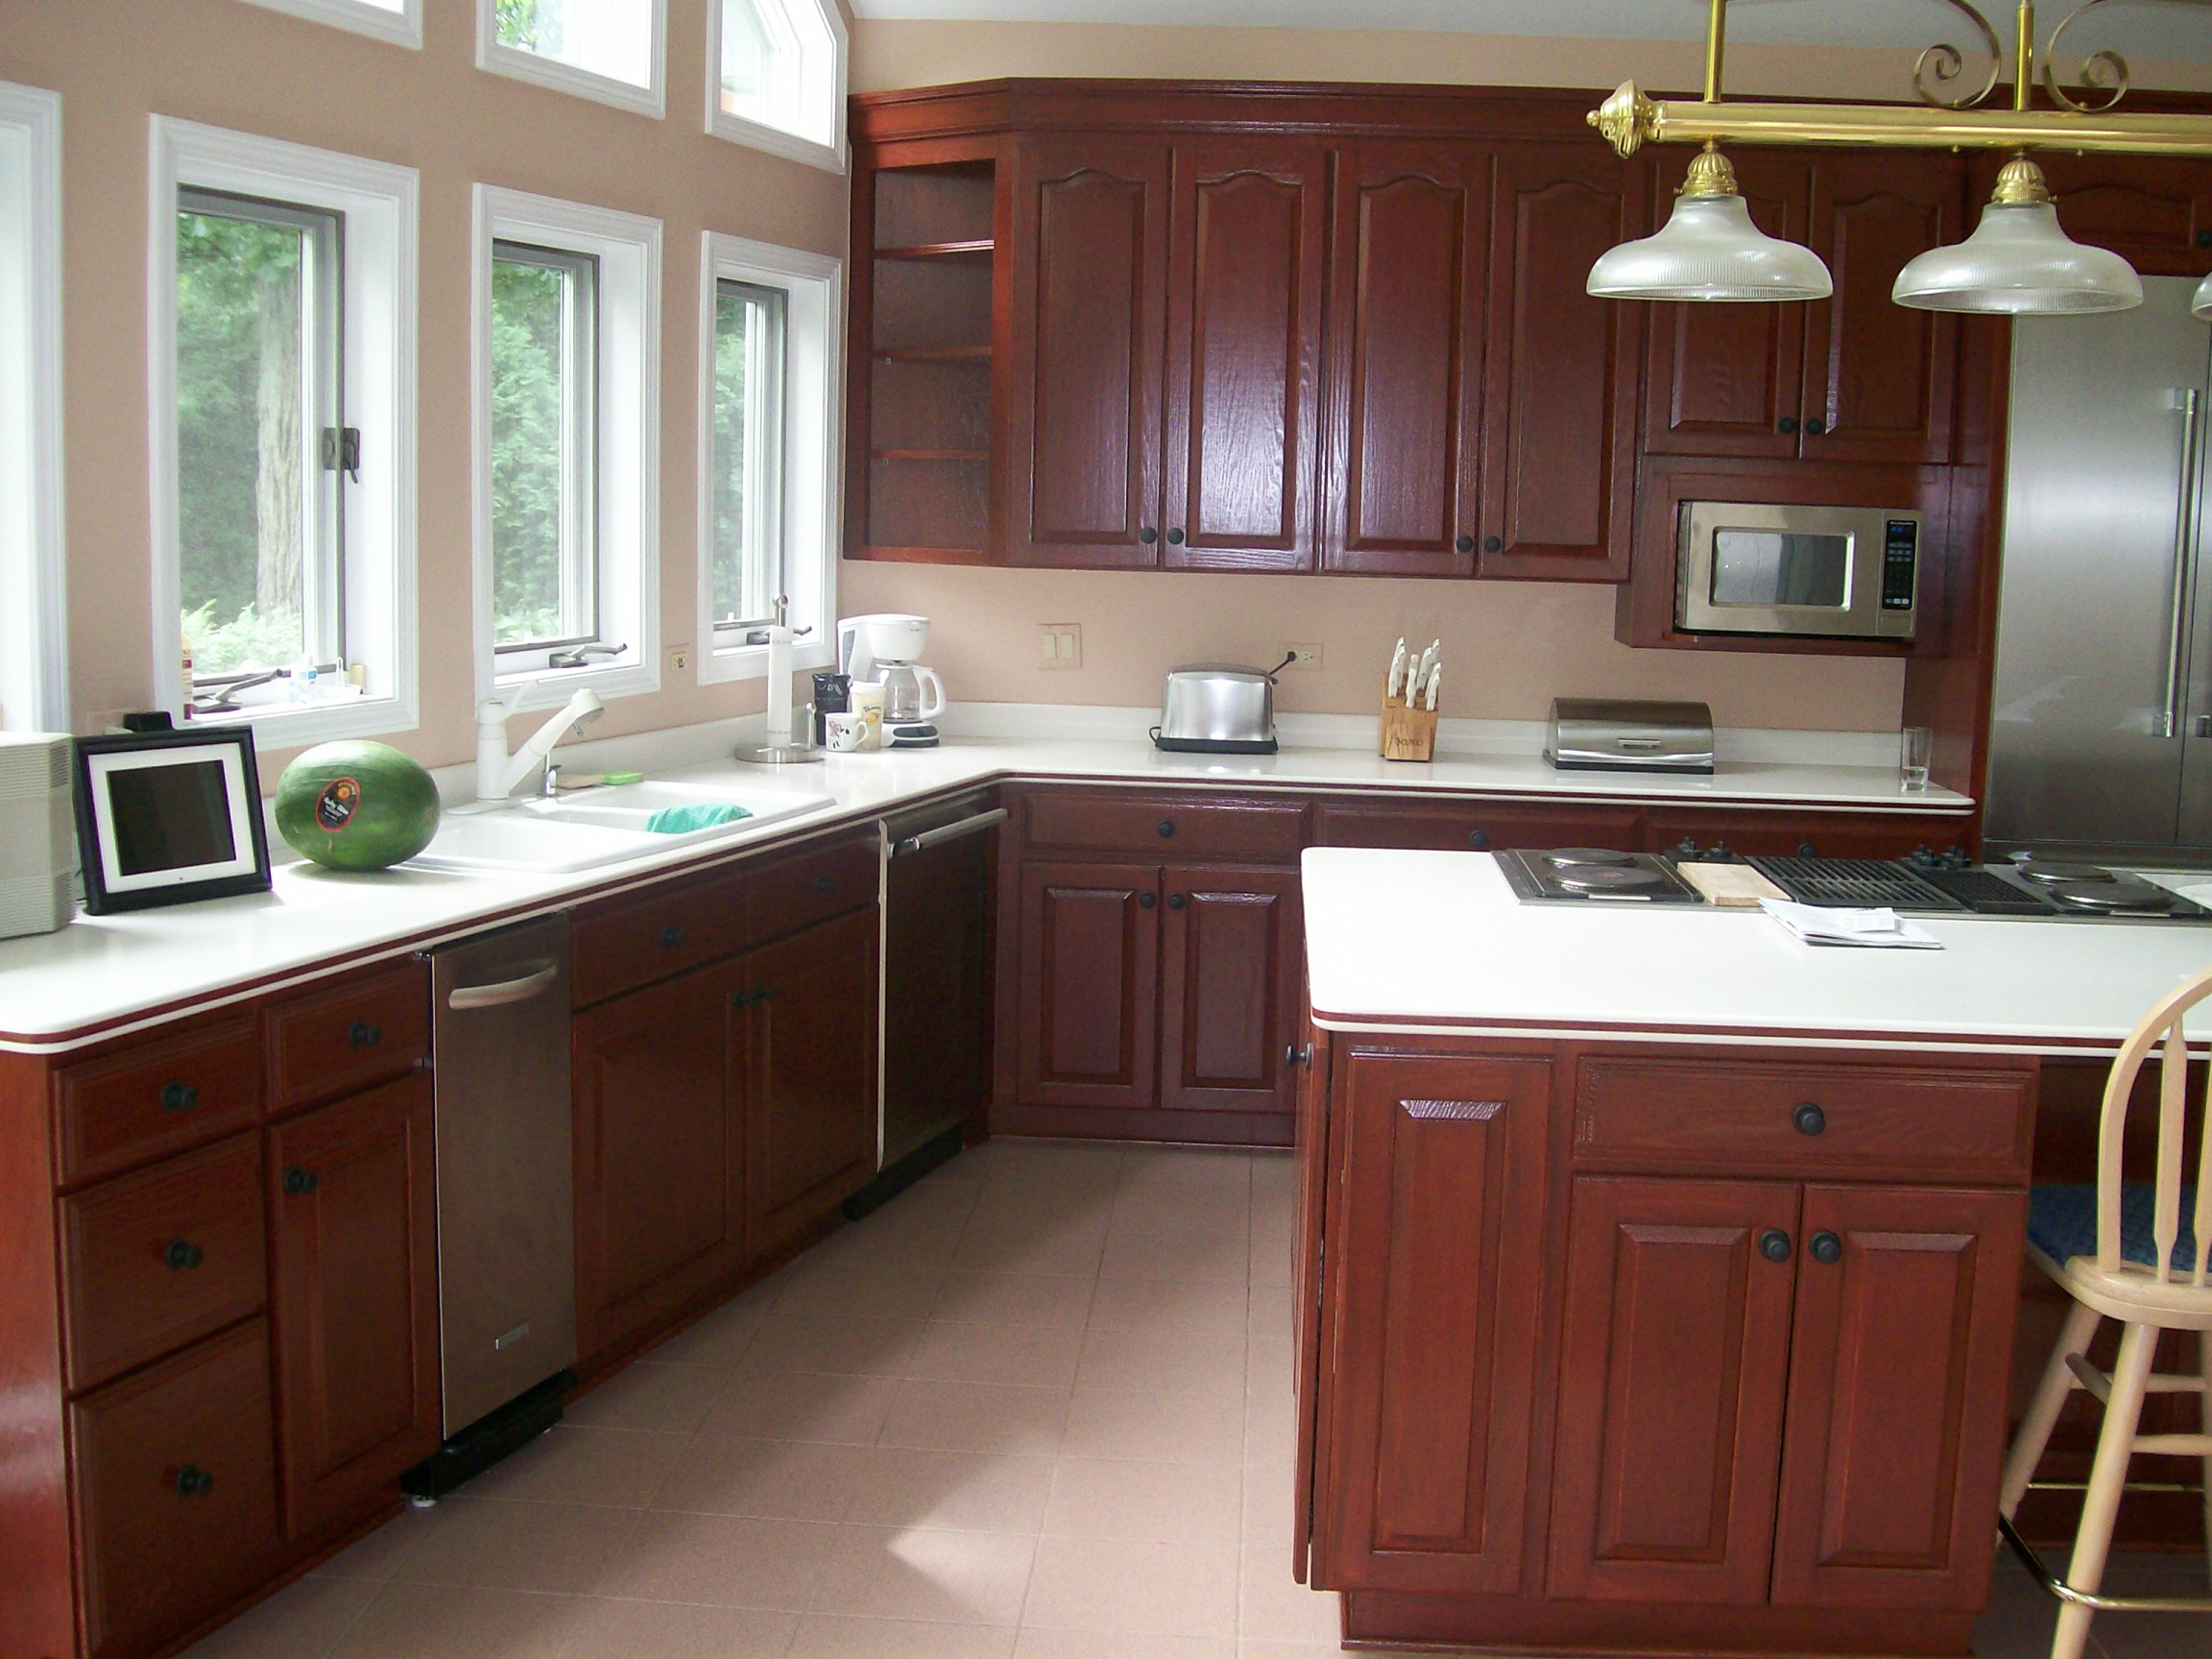 Painting mobile home cabinets home painting ideas for Painting kitchen cabinets